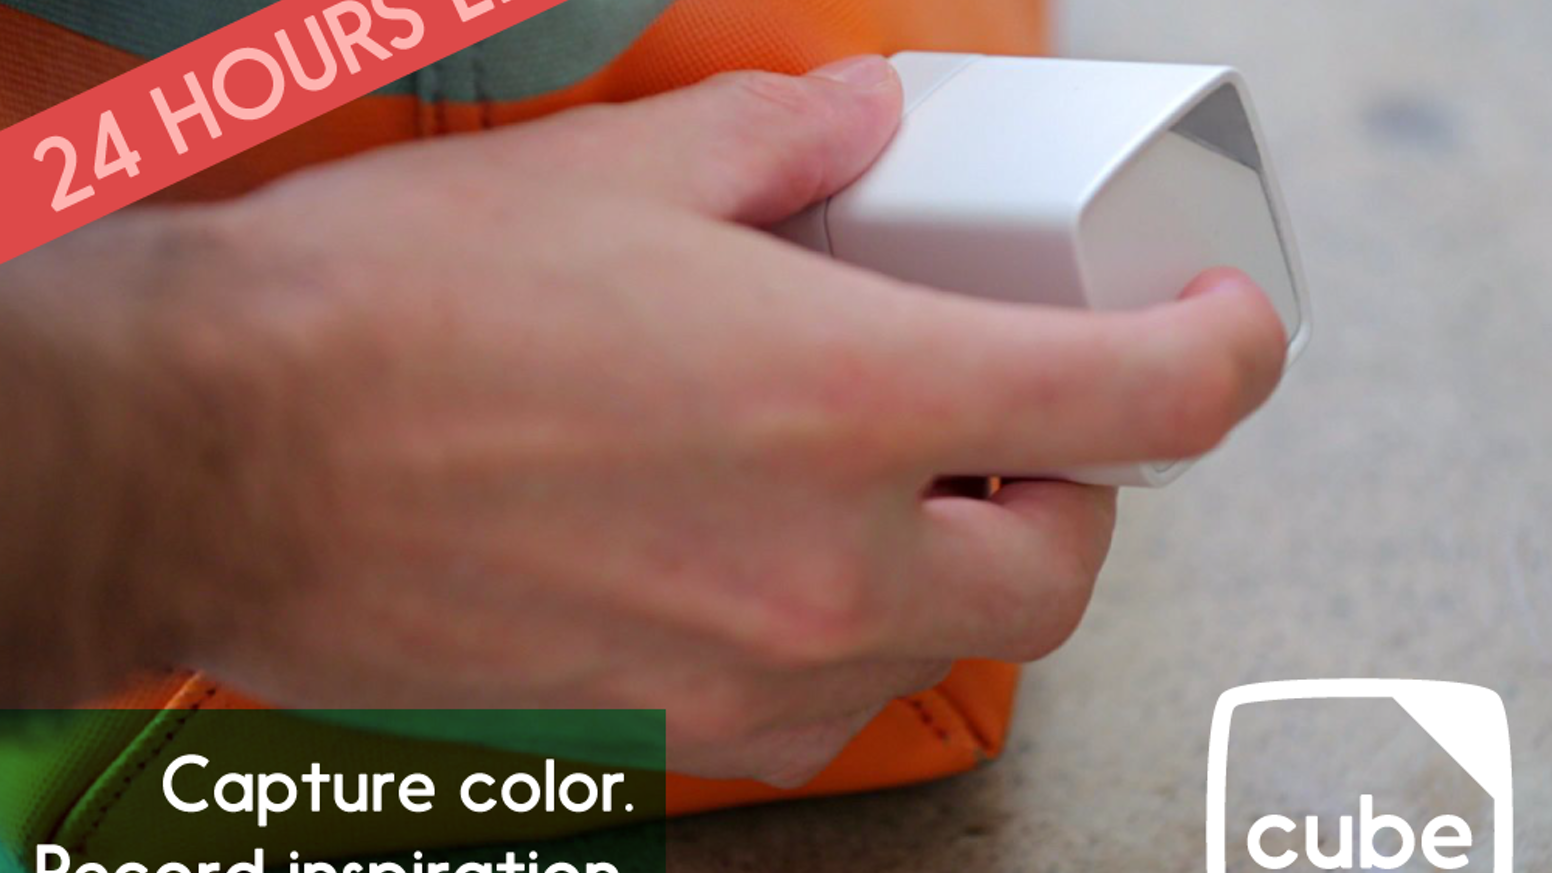 Cube fits in your hand and with one tap captures any color on any surface.